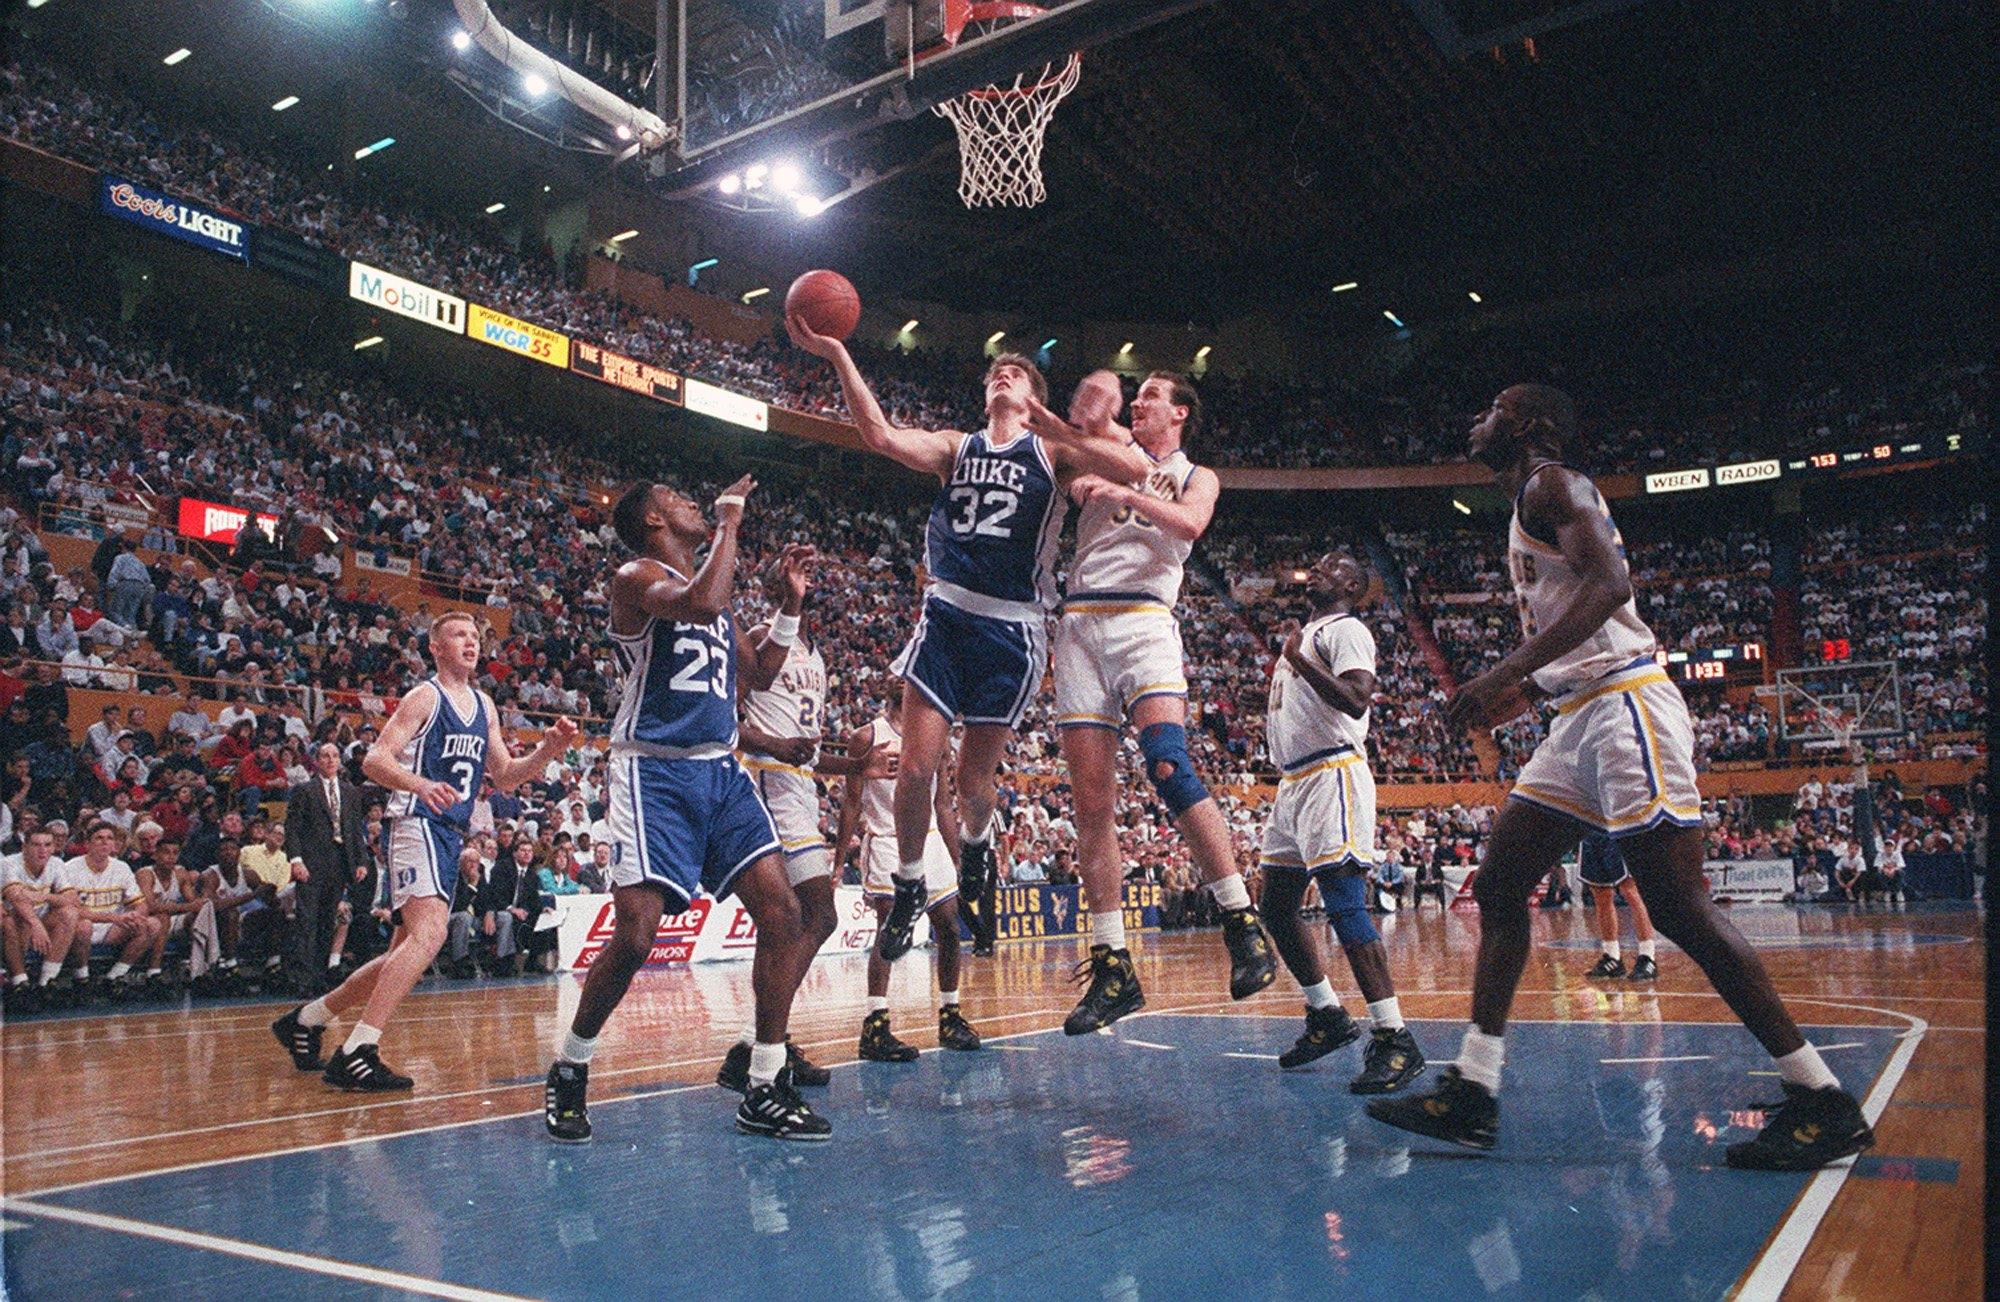 Duke's Christian Laettner goes up for a basket against Canisius during a game played in Buffalo in December 1991.